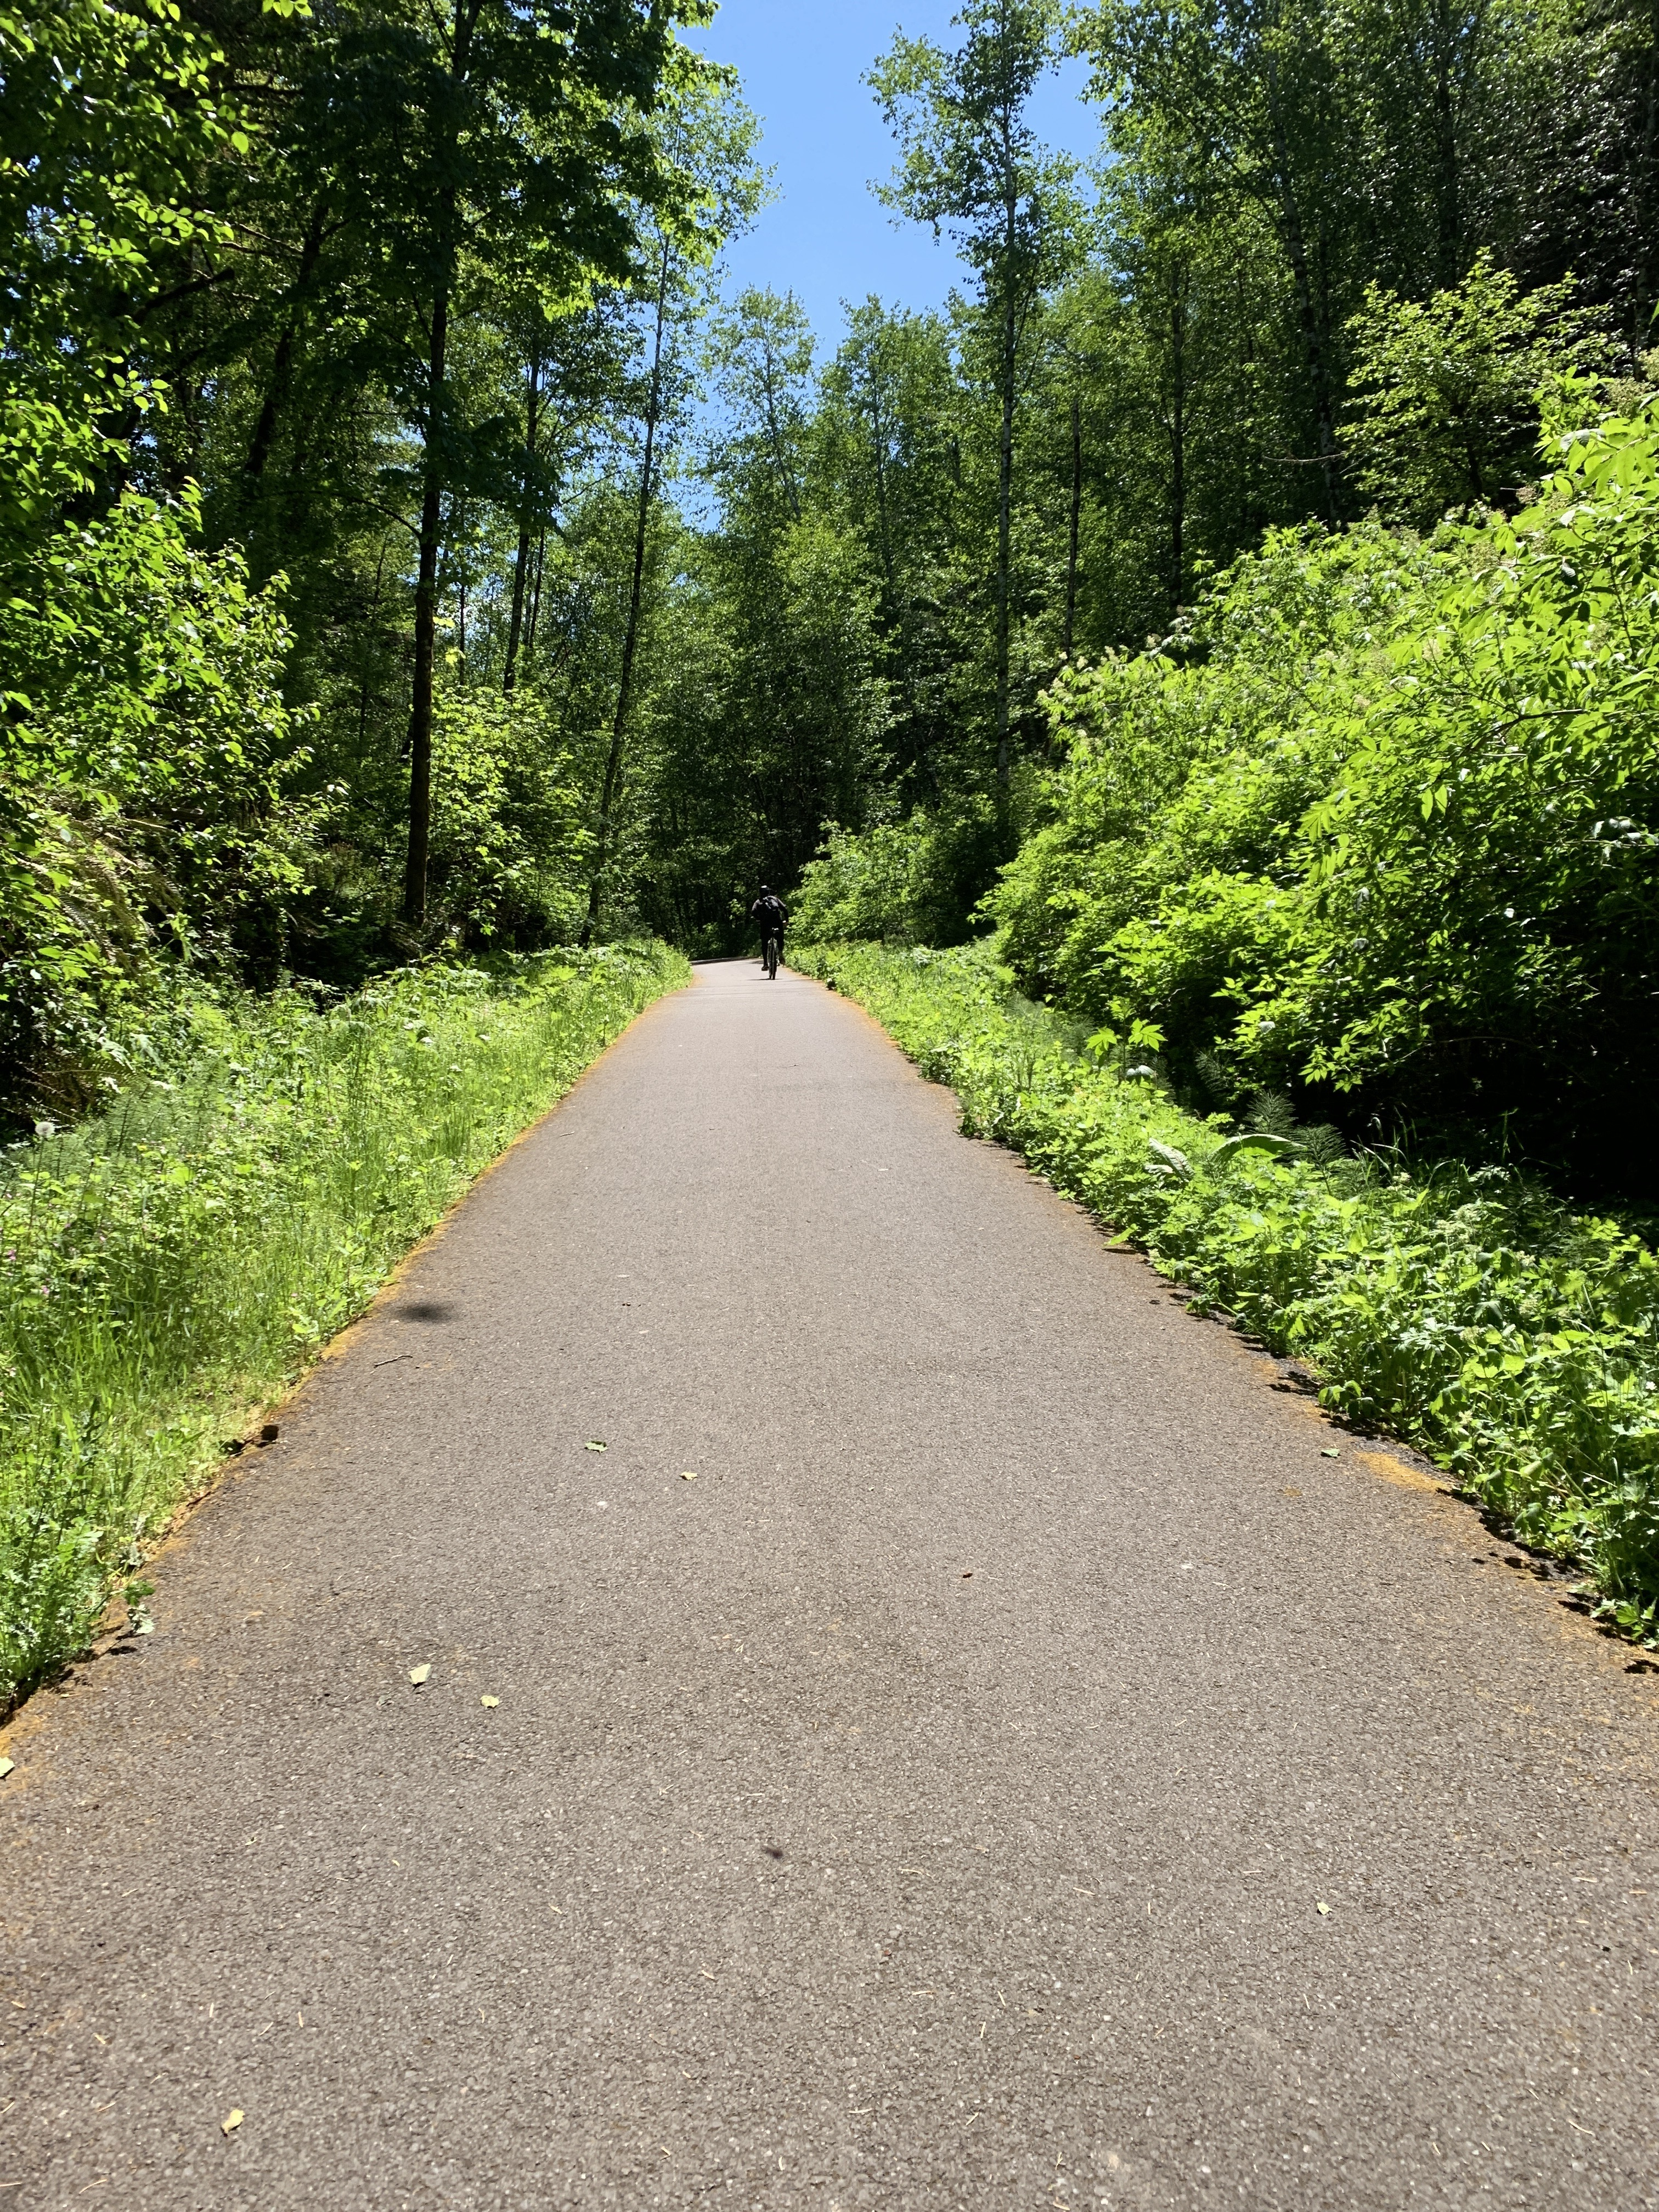 The Banks-Vernonia Rails-to-Trails State Park